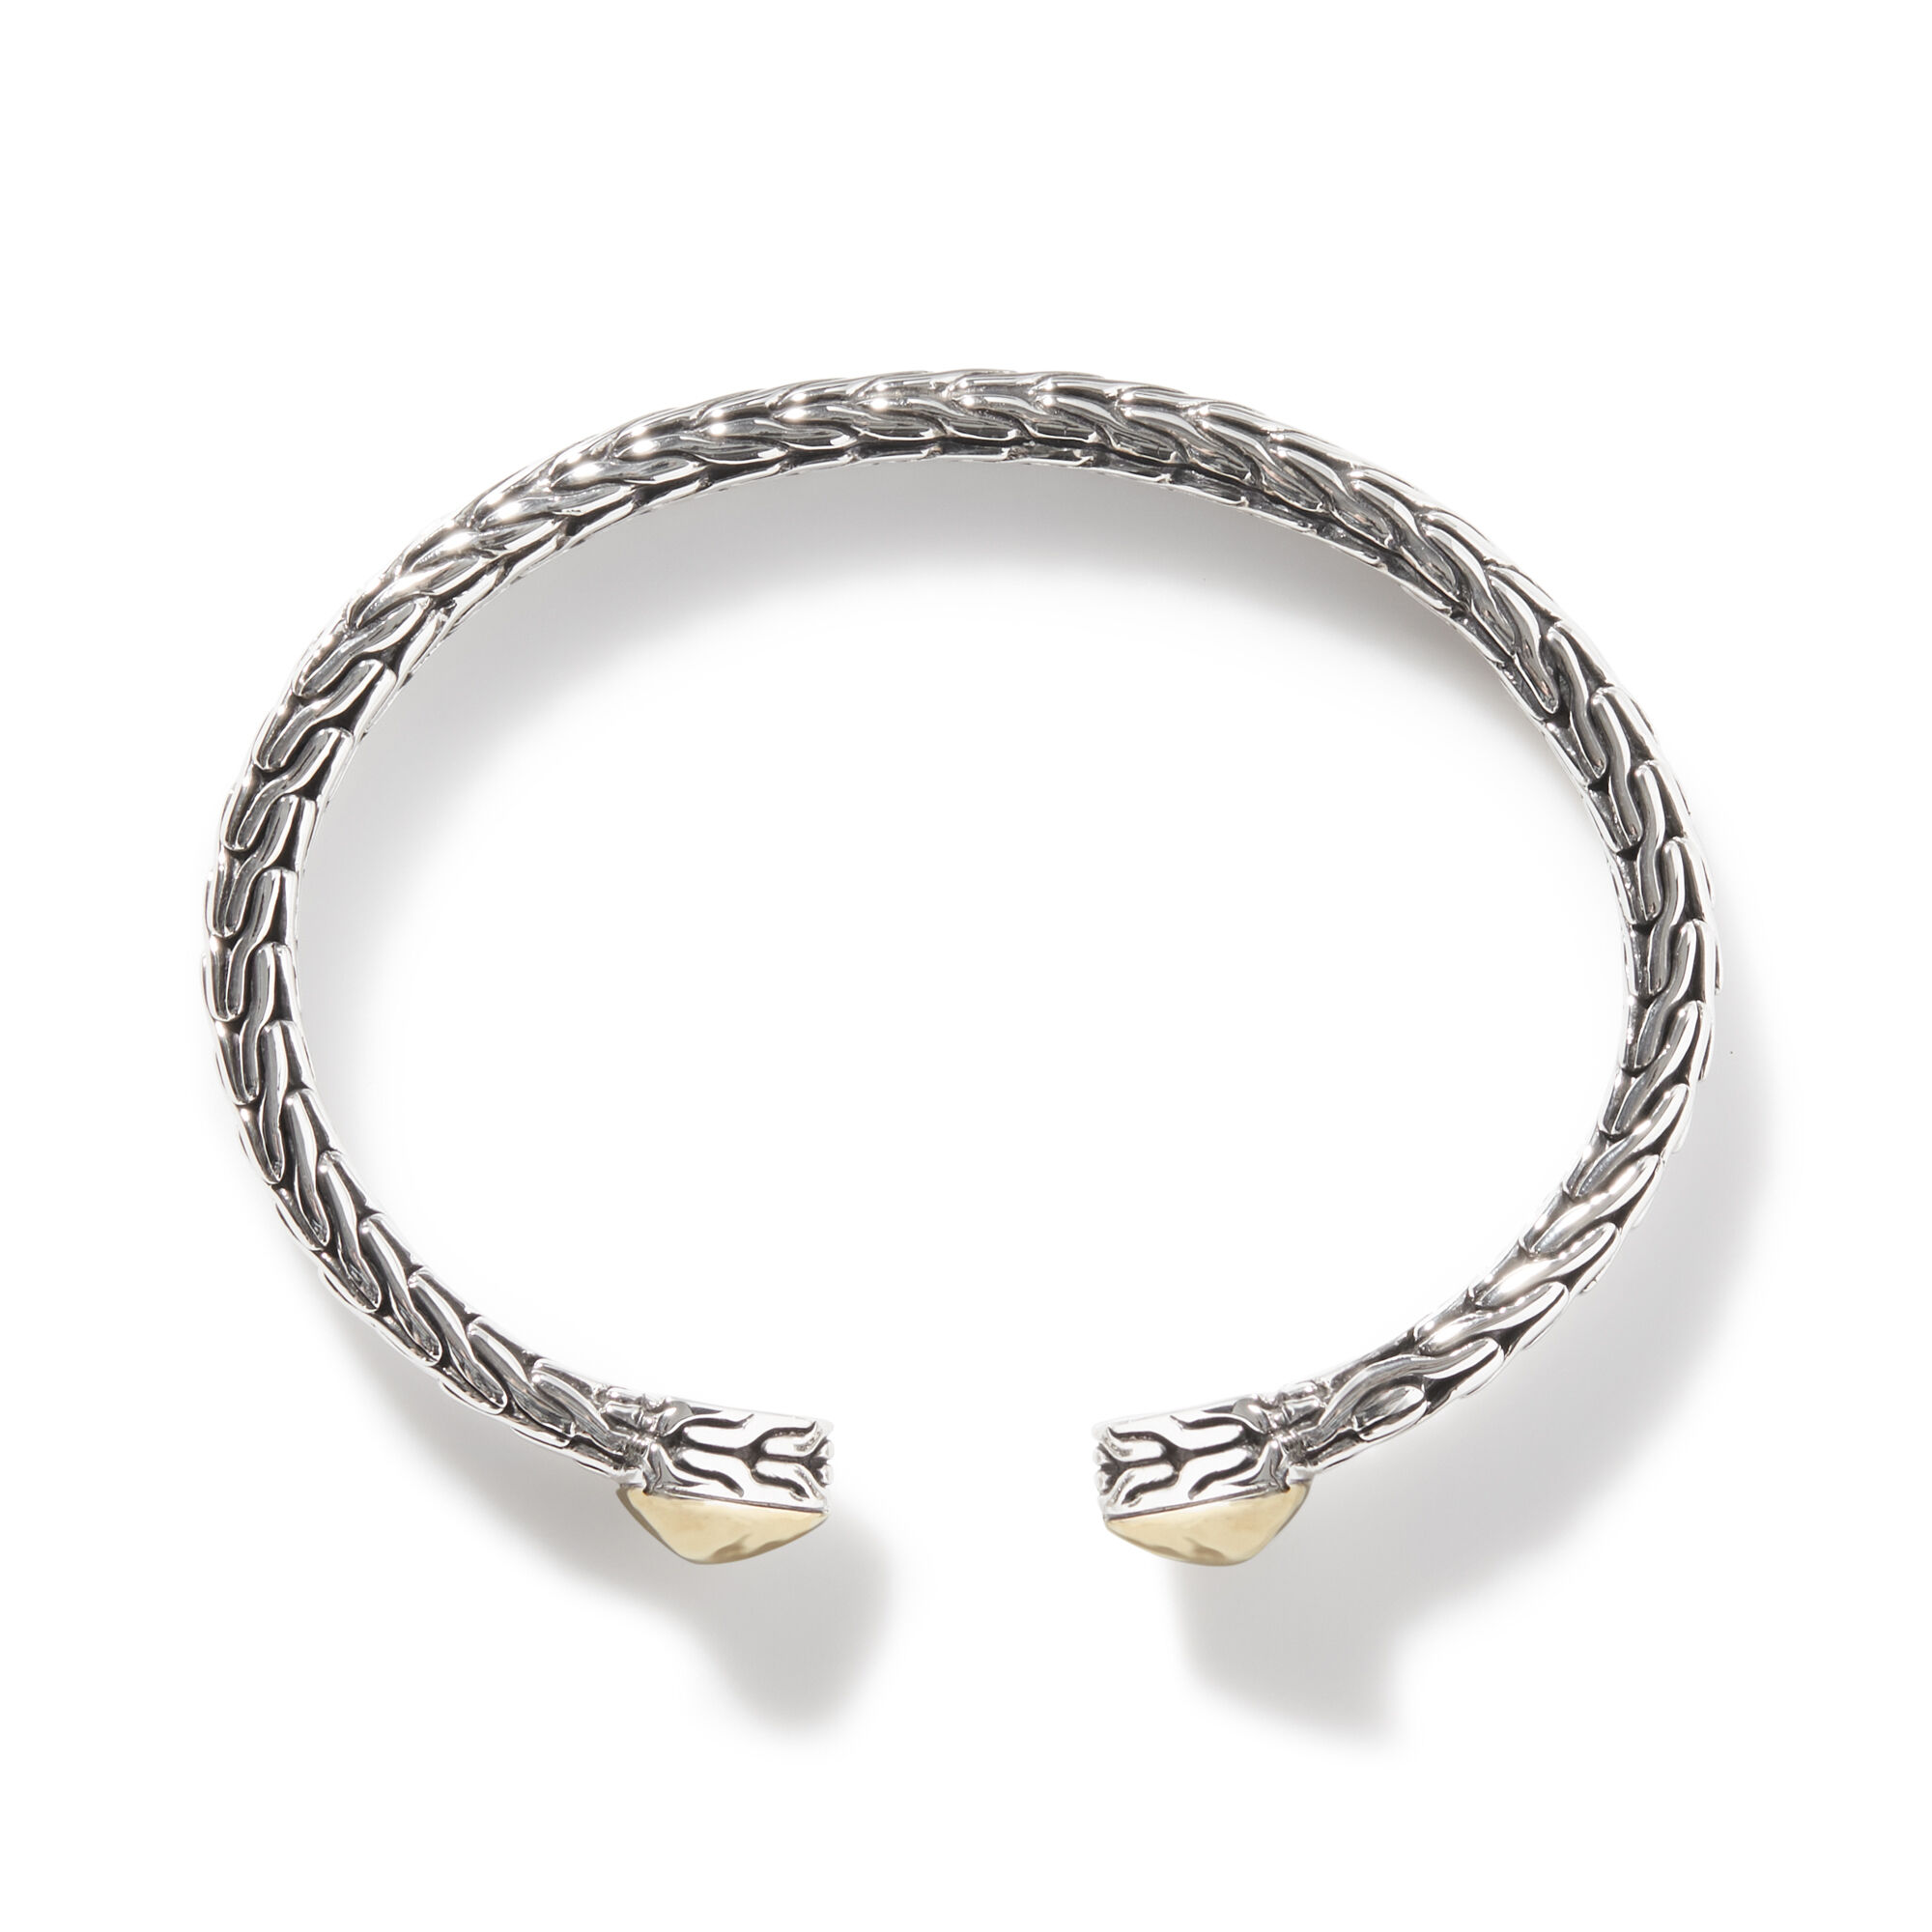 Classic Chain Flex Cuff in Hammered 18K Gold and Silver, , large